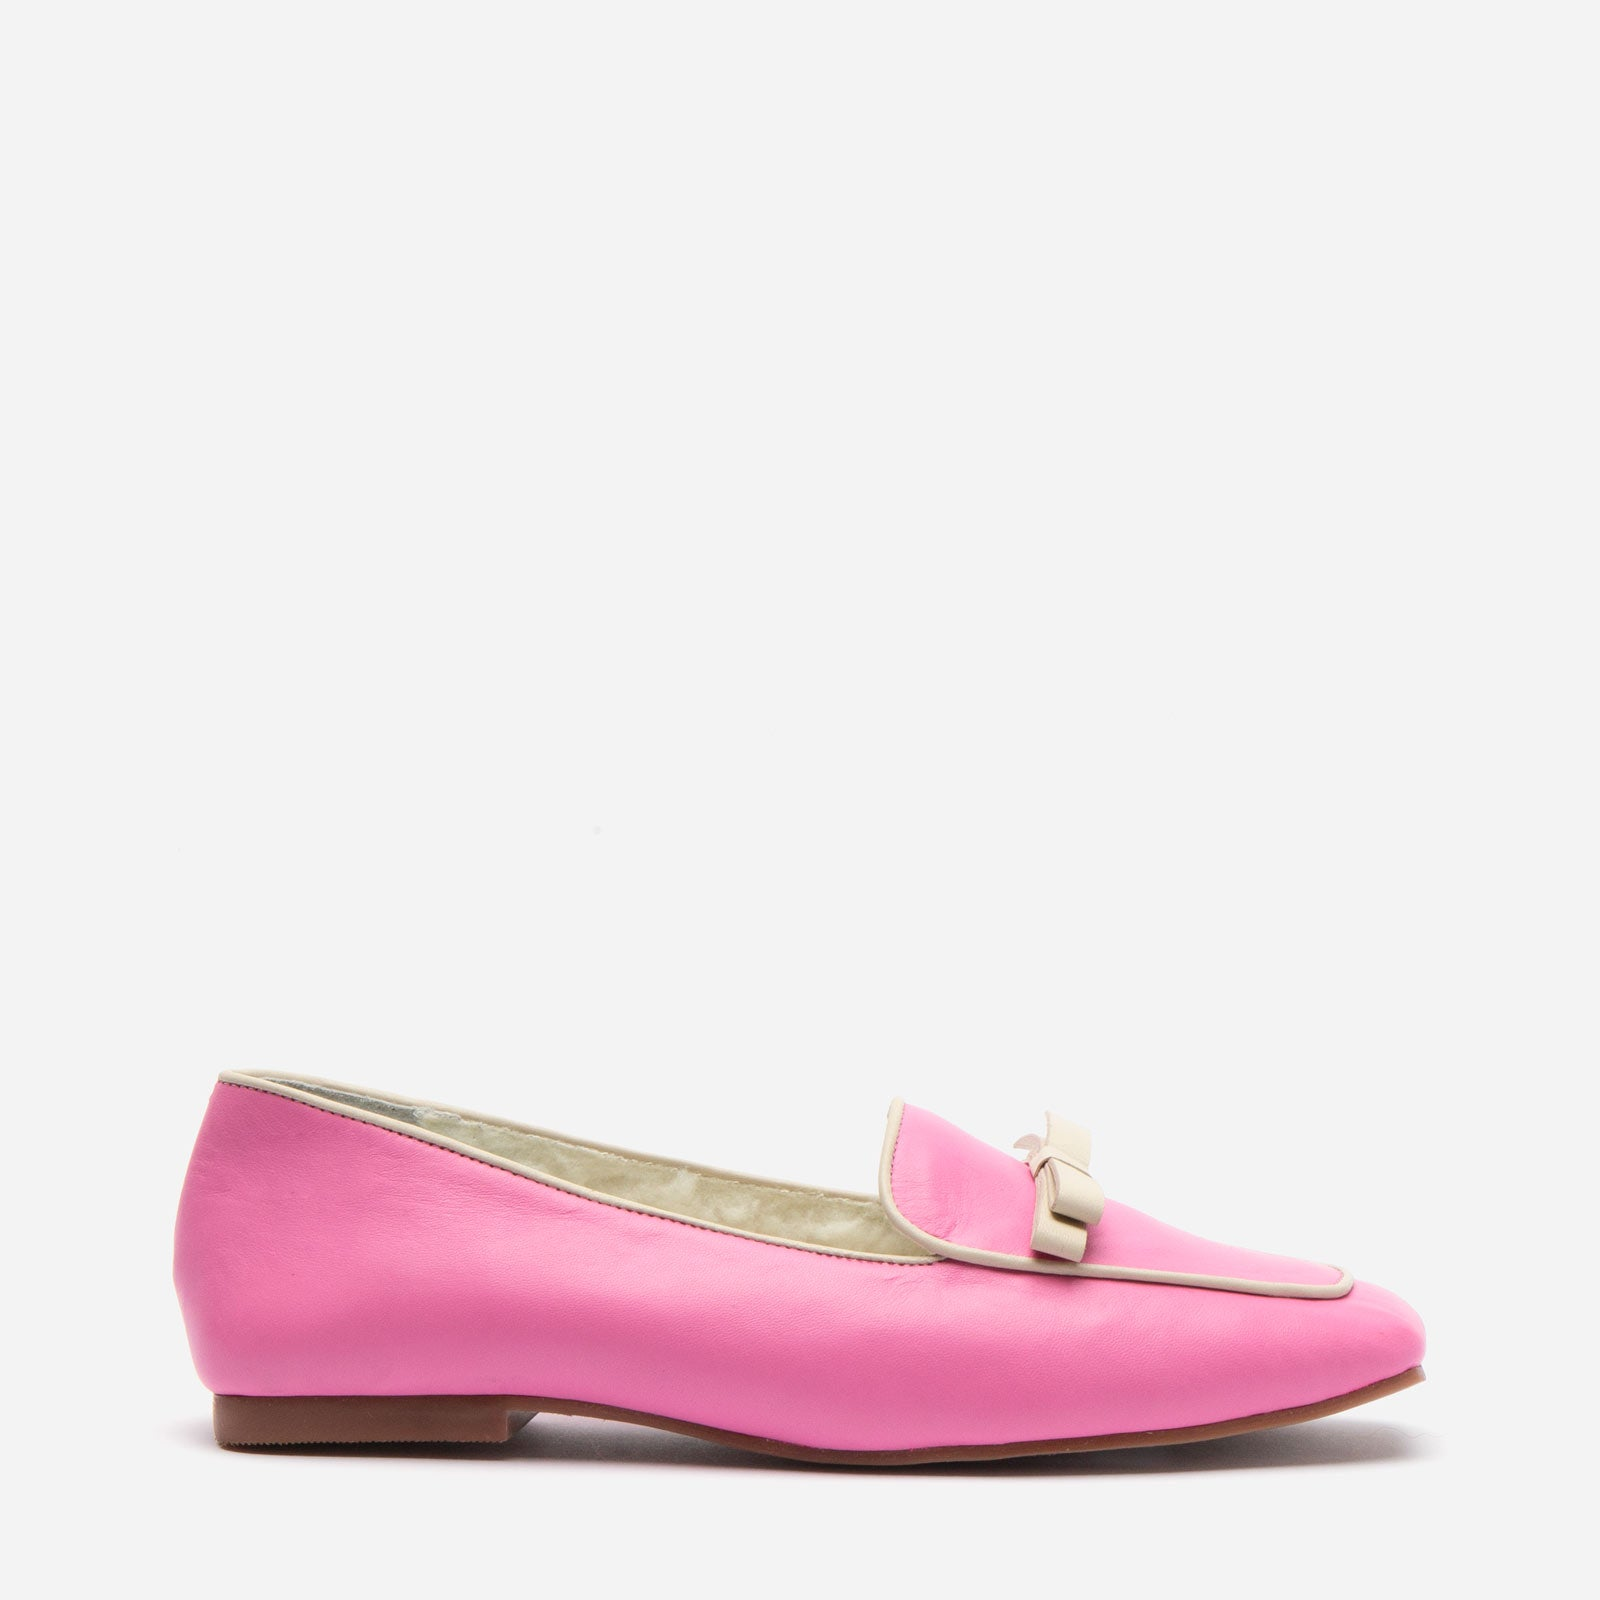 Suzanne Cozy Loafer Nappa Faux Shearling Pink